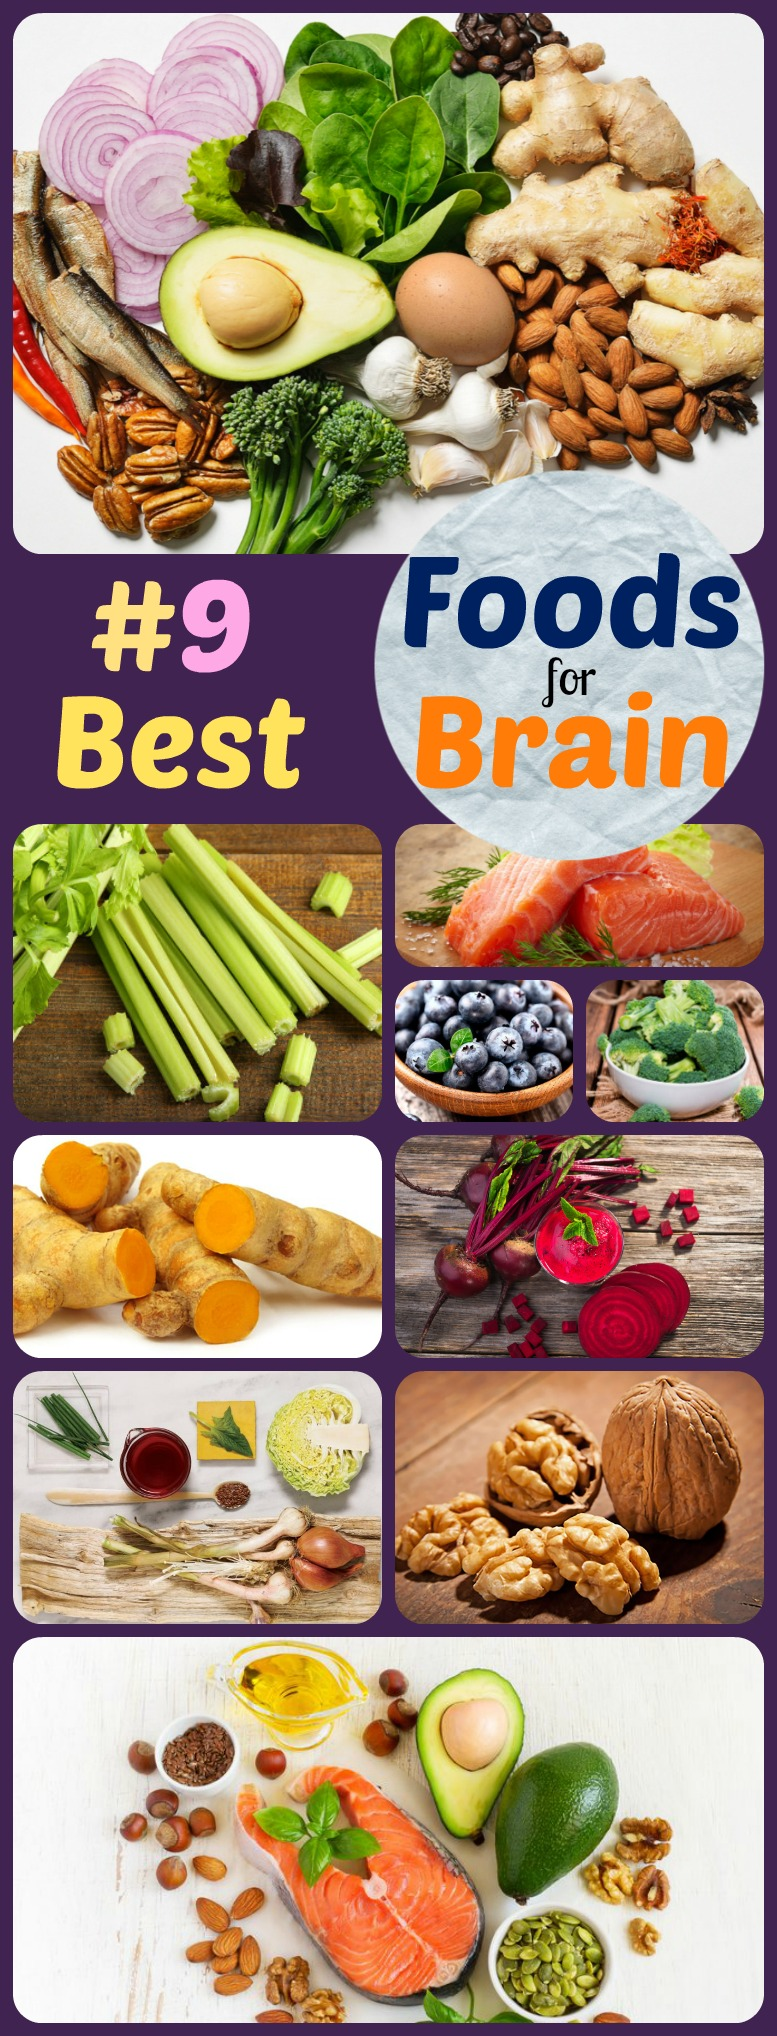 Best foods - Brain boosting foods to eat